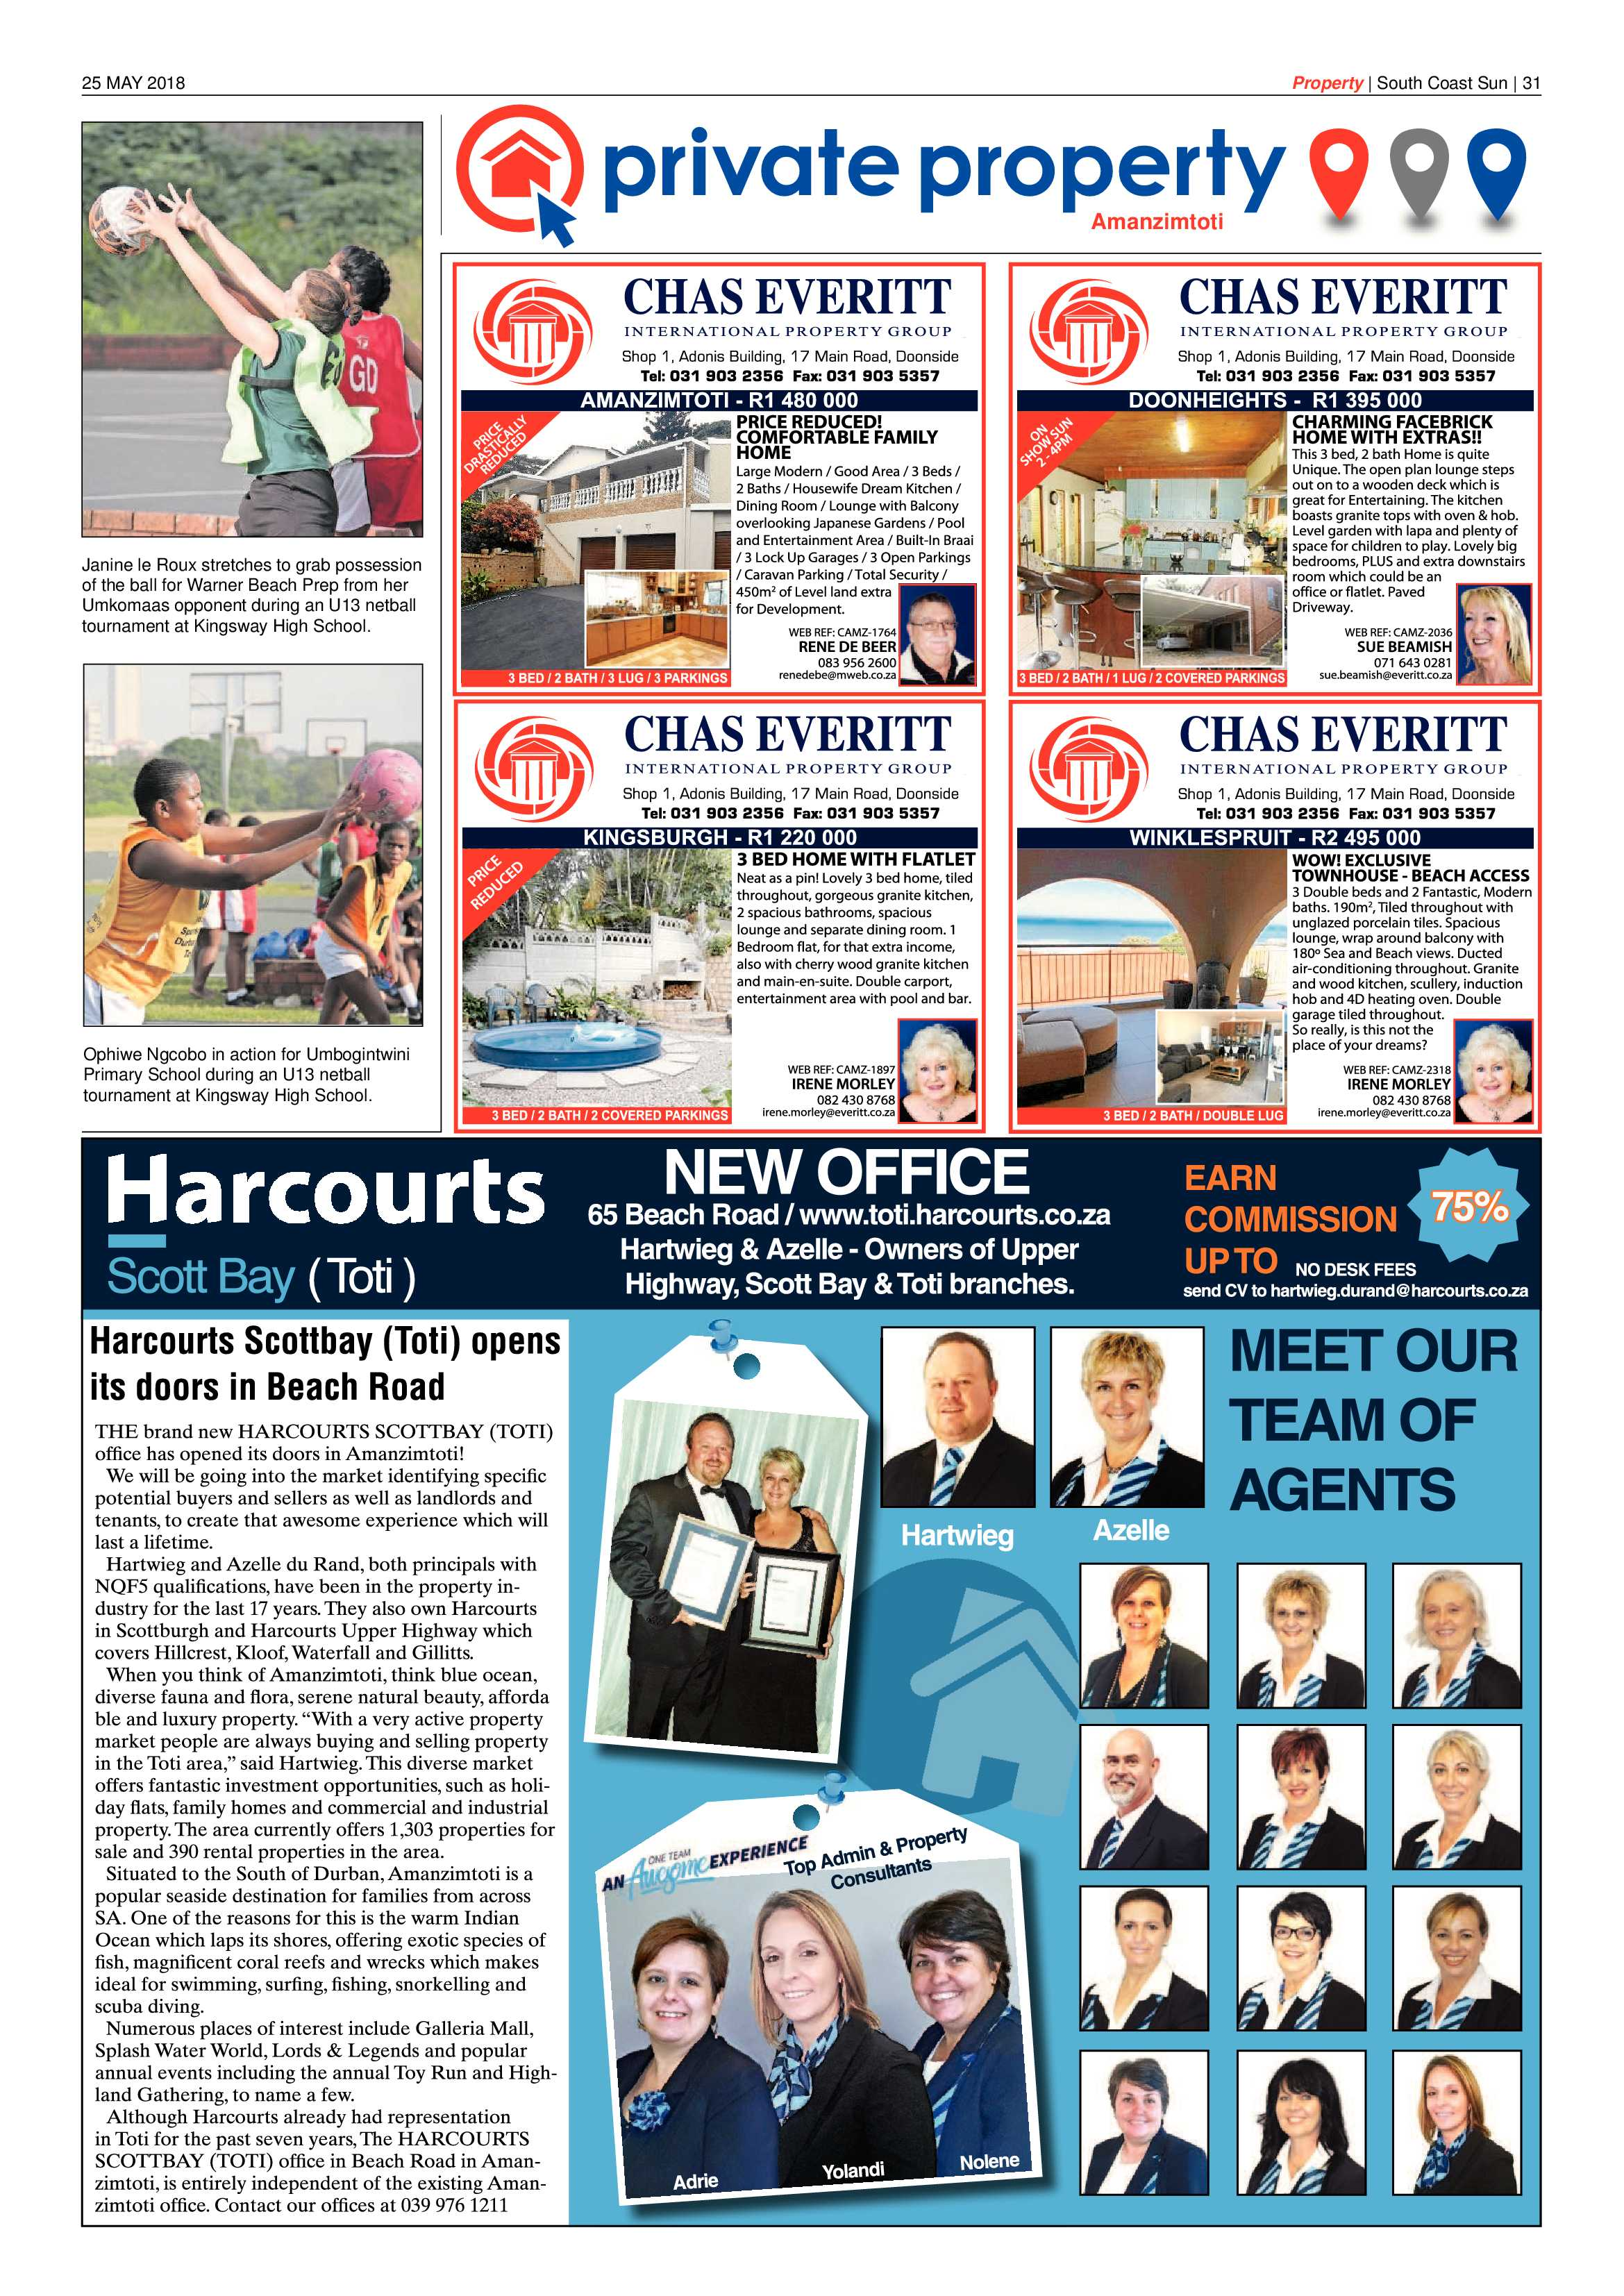 25-may-2018-epapers-page-31